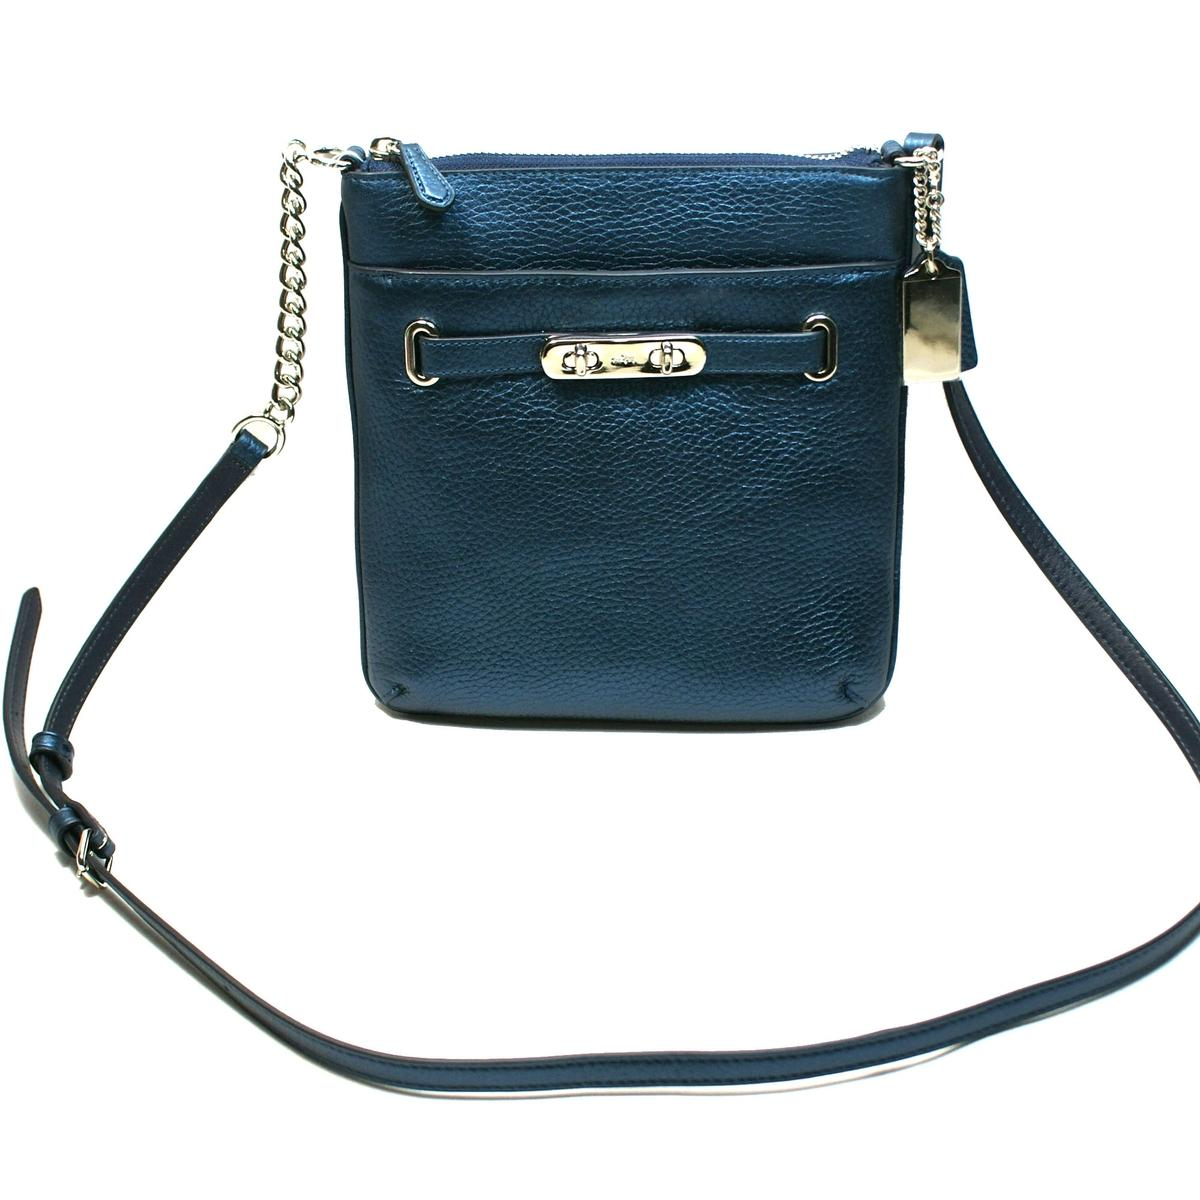 Jeans Leather Blue Crossbody ili Handbag ZwYqxg. by Laura Young Baxley, See also: Dances, Clogging; the Shag. The shag is a popular dance most commonly associated with the beach towns of NorthCarolina and South Carolina. It is a two-person, male-led dance with a basic step that allows much room for improvisation and imagination.